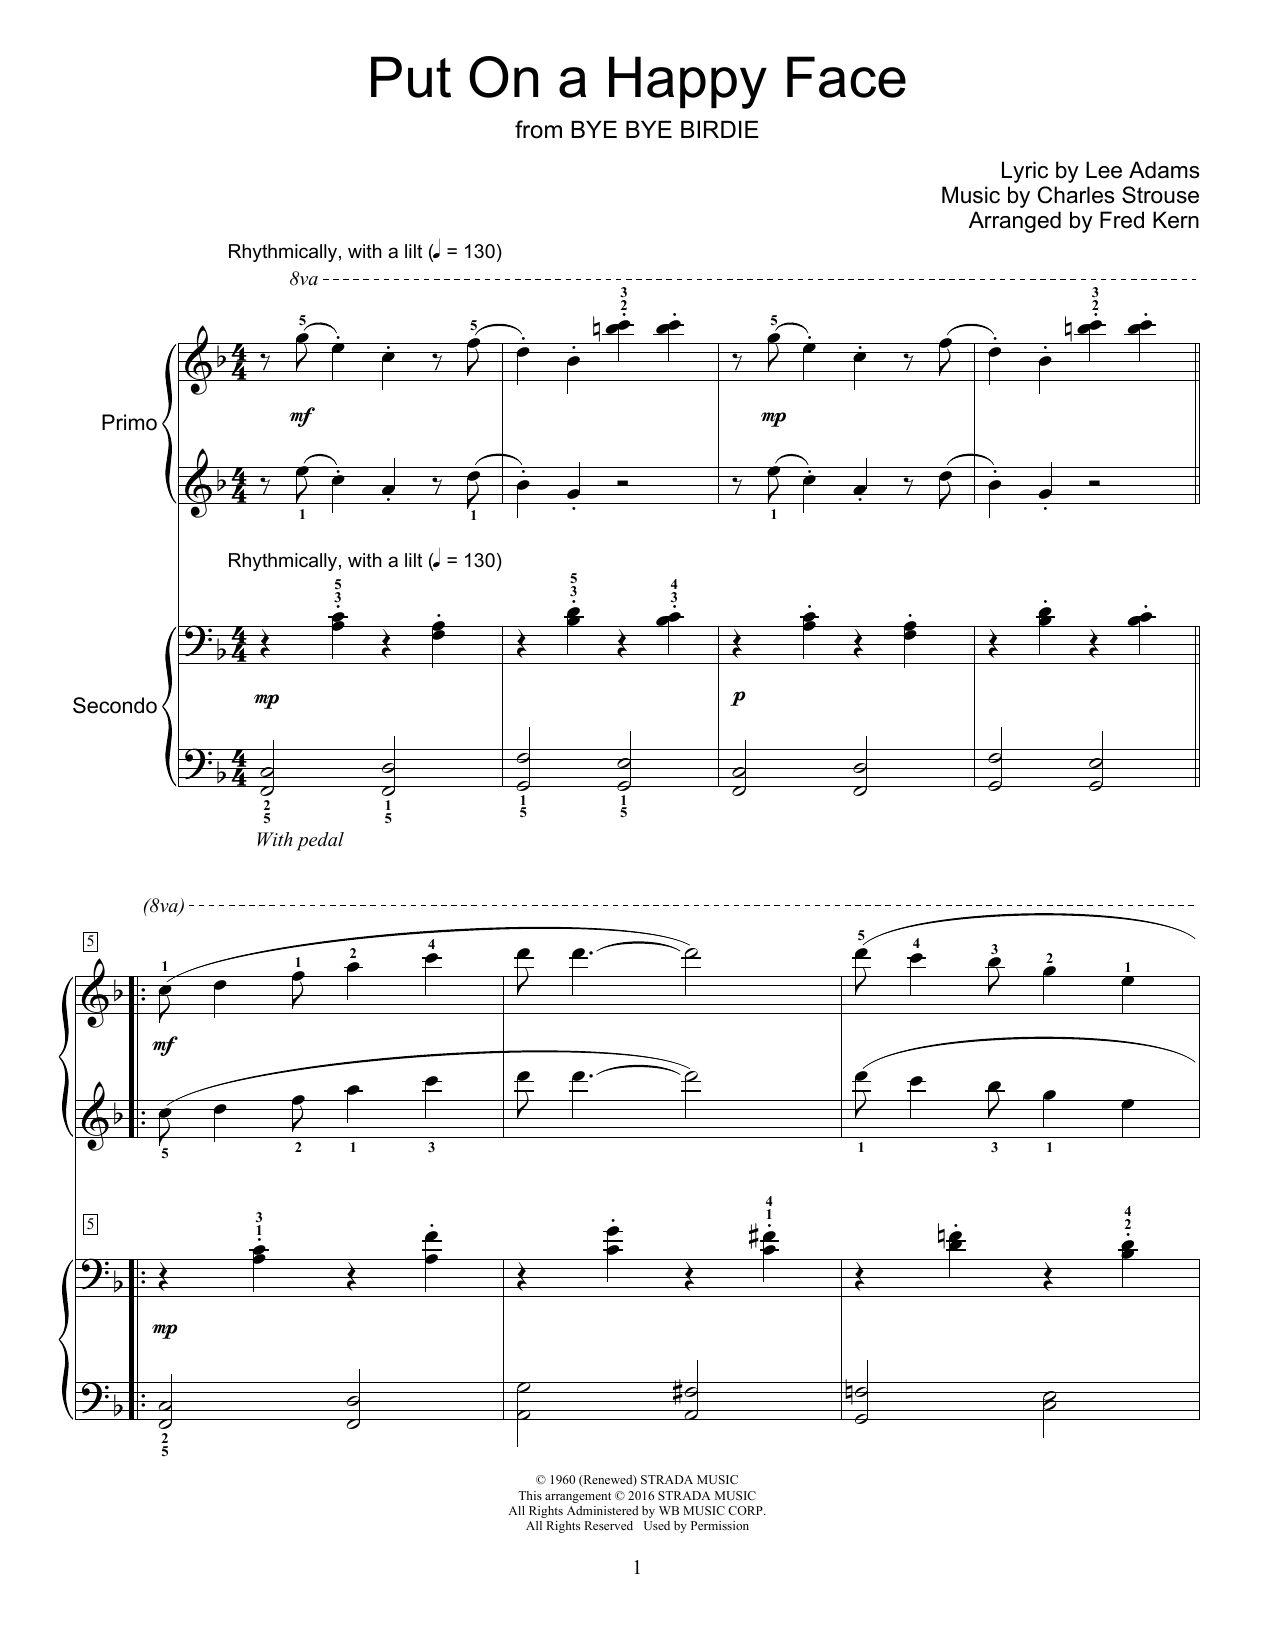 Fred Kern Put On A Happy Face sheet music notes and chords